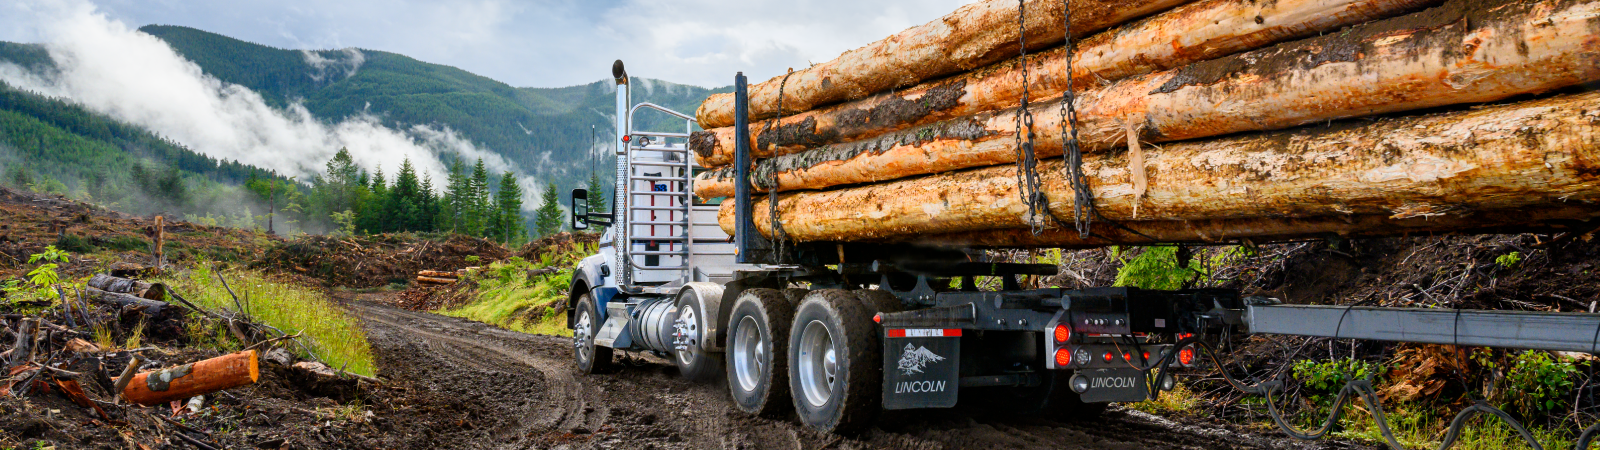 HeaderImage_Logging